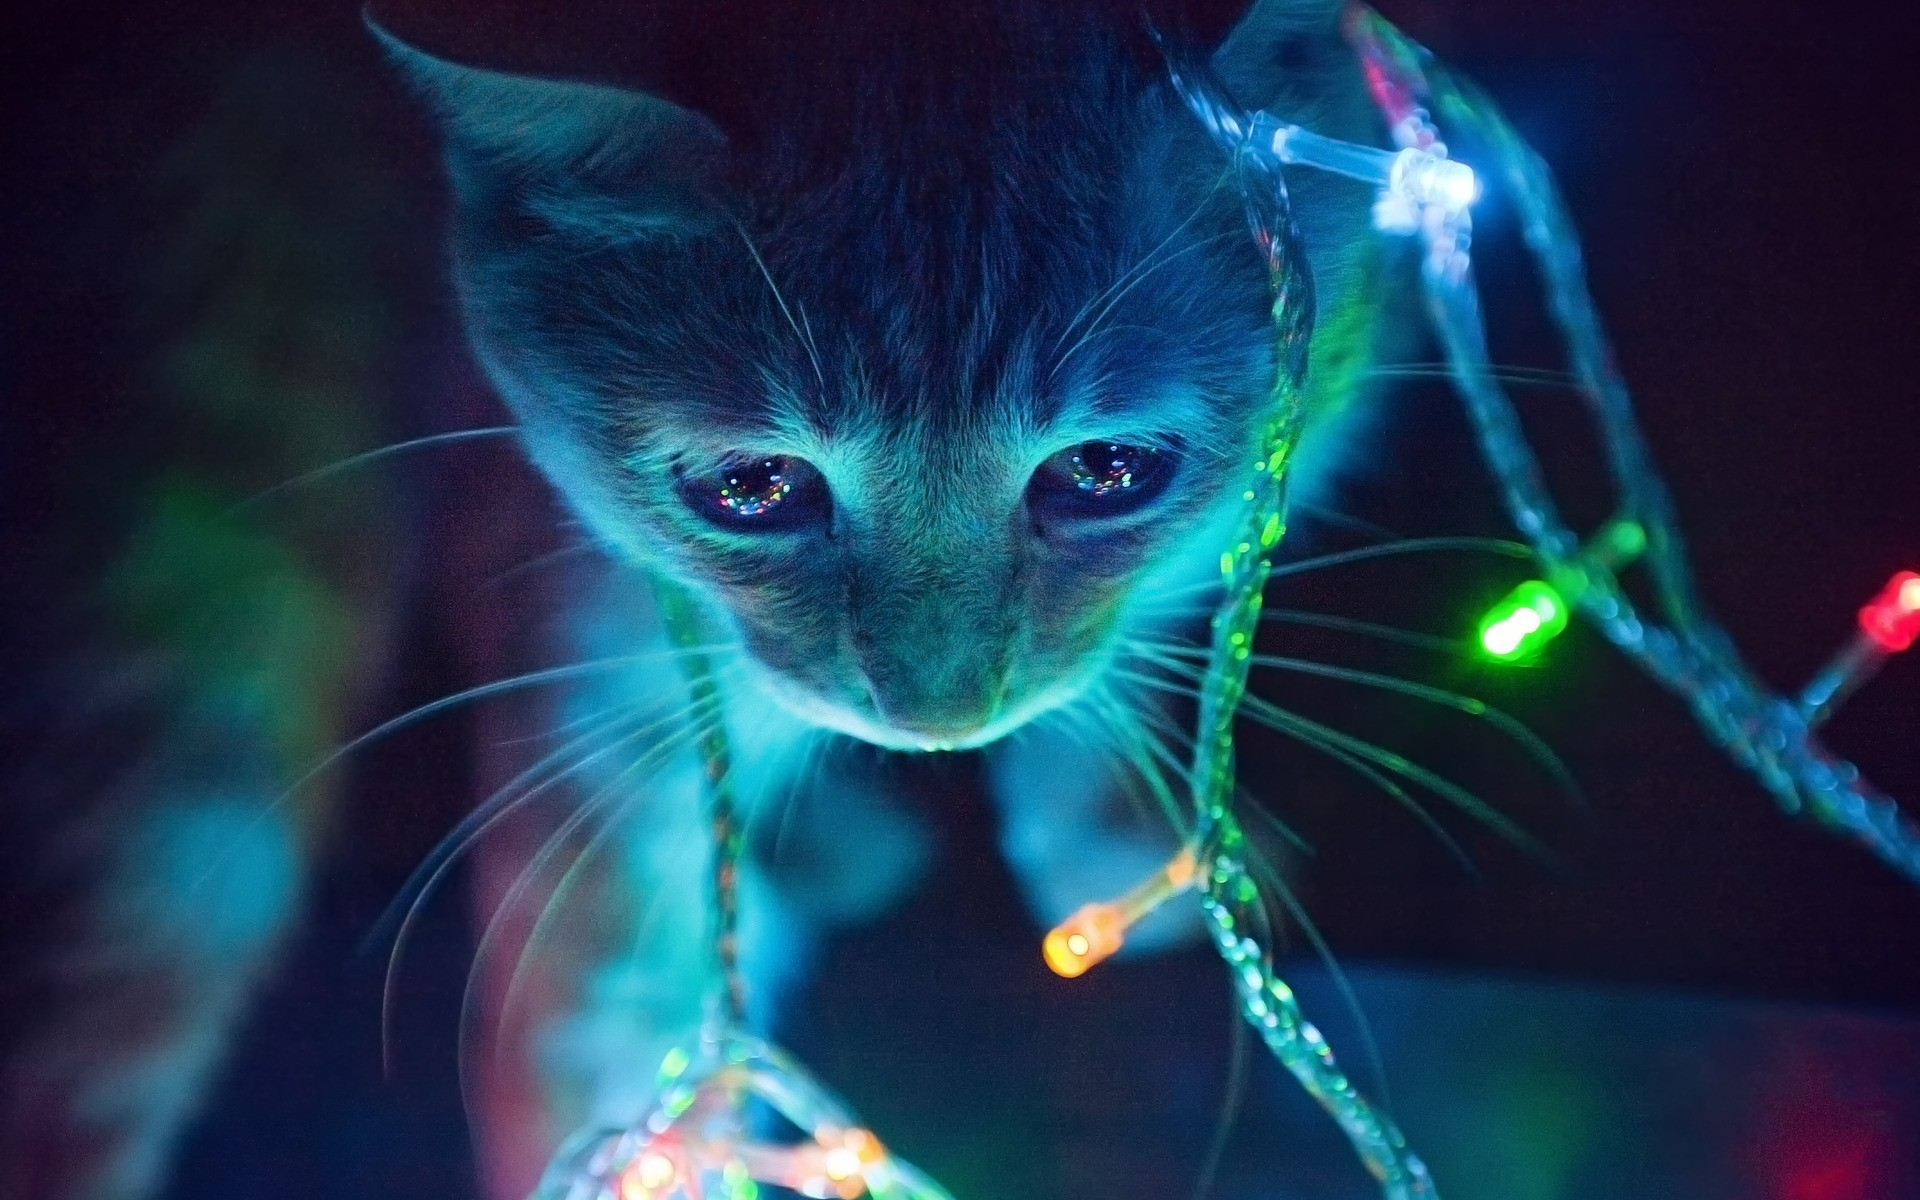 Christmas lights kitten colorful lights kitty cat wallpaper vibrant colors  cute adorable atmospheric atmosphere X-